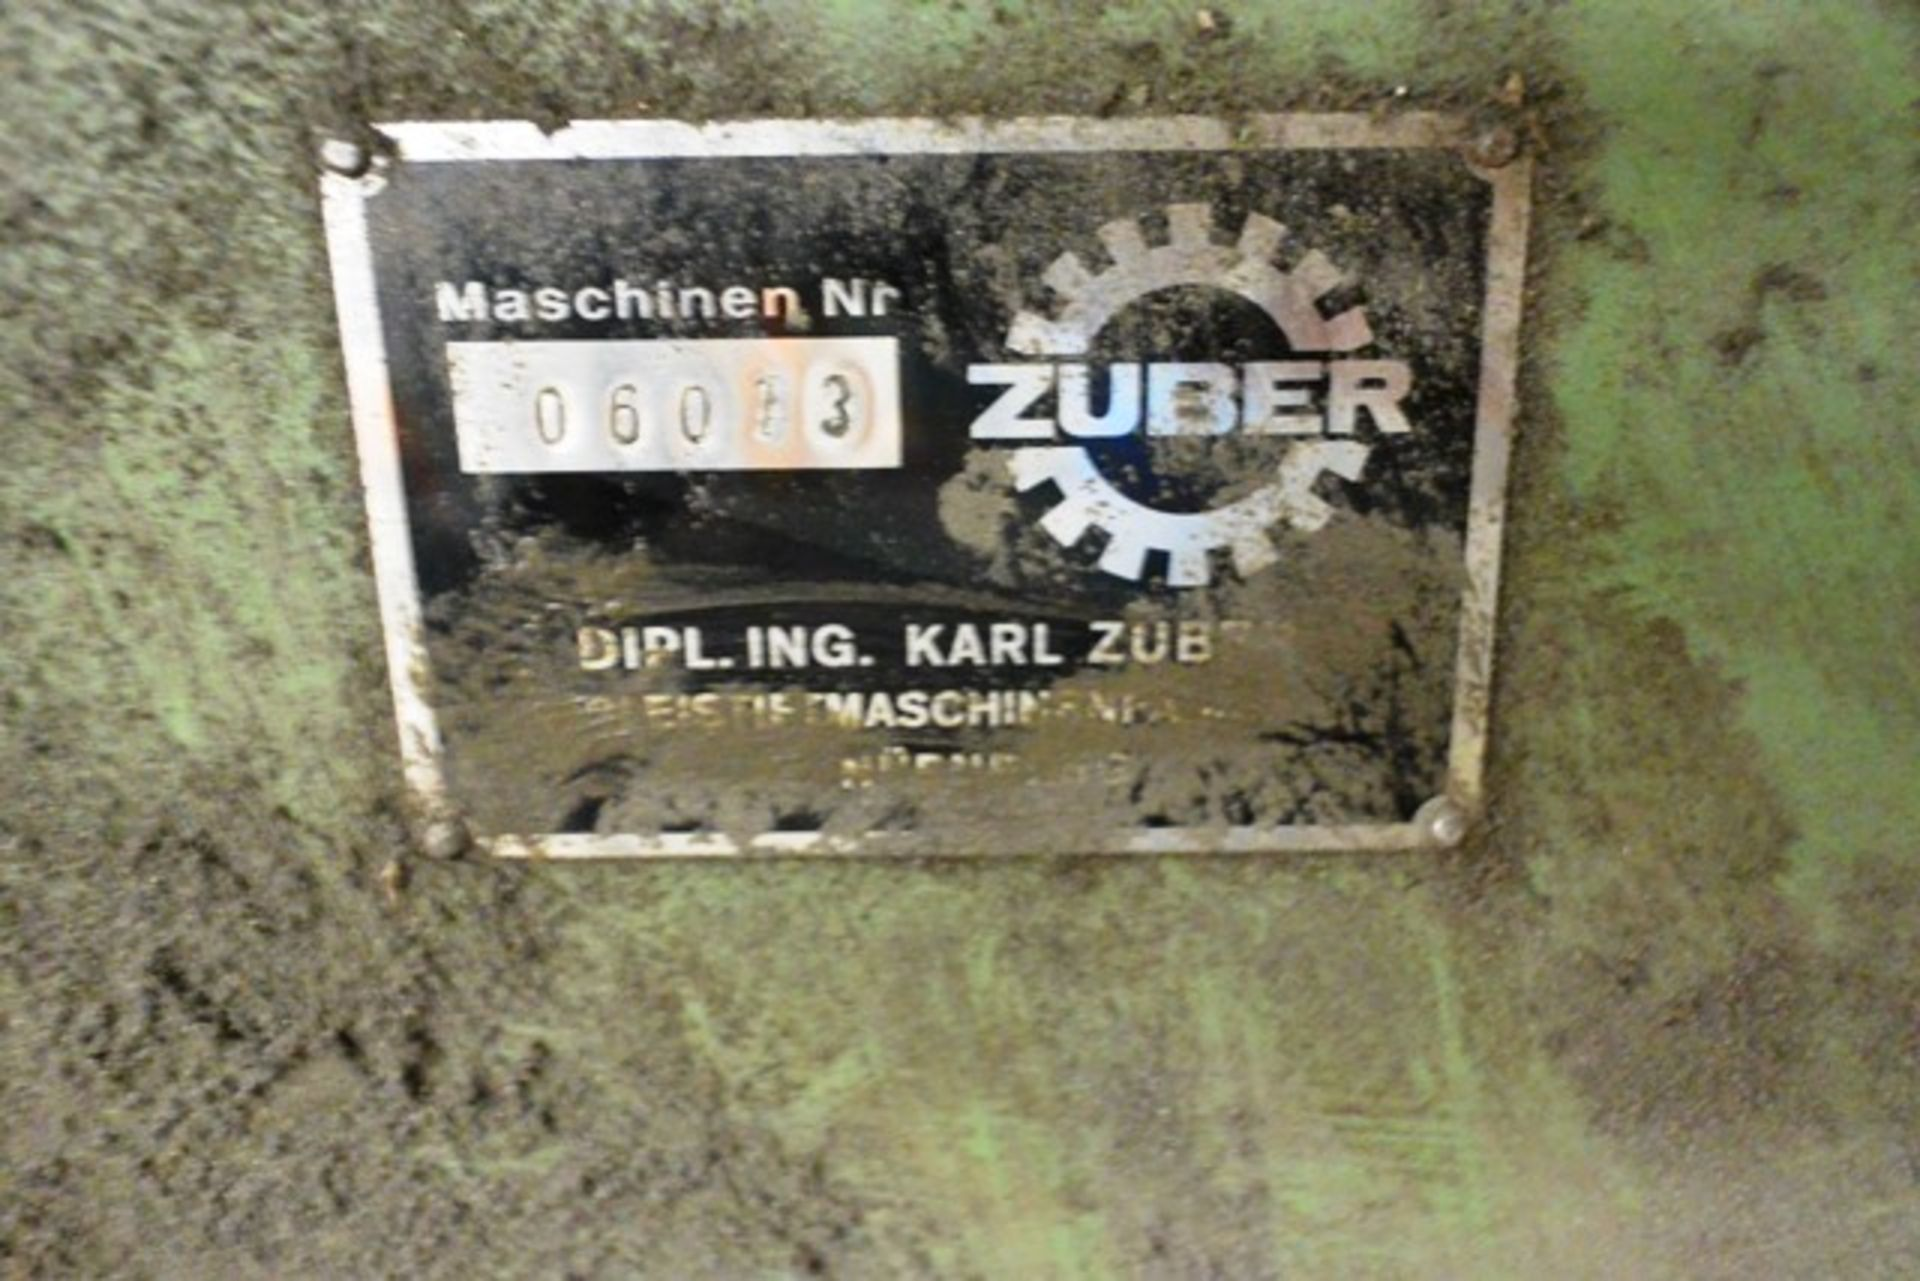 Zuber horizontal surface grinder, machine no. 06013, approx table dimension 900 x 270mm - Image 6 of 7